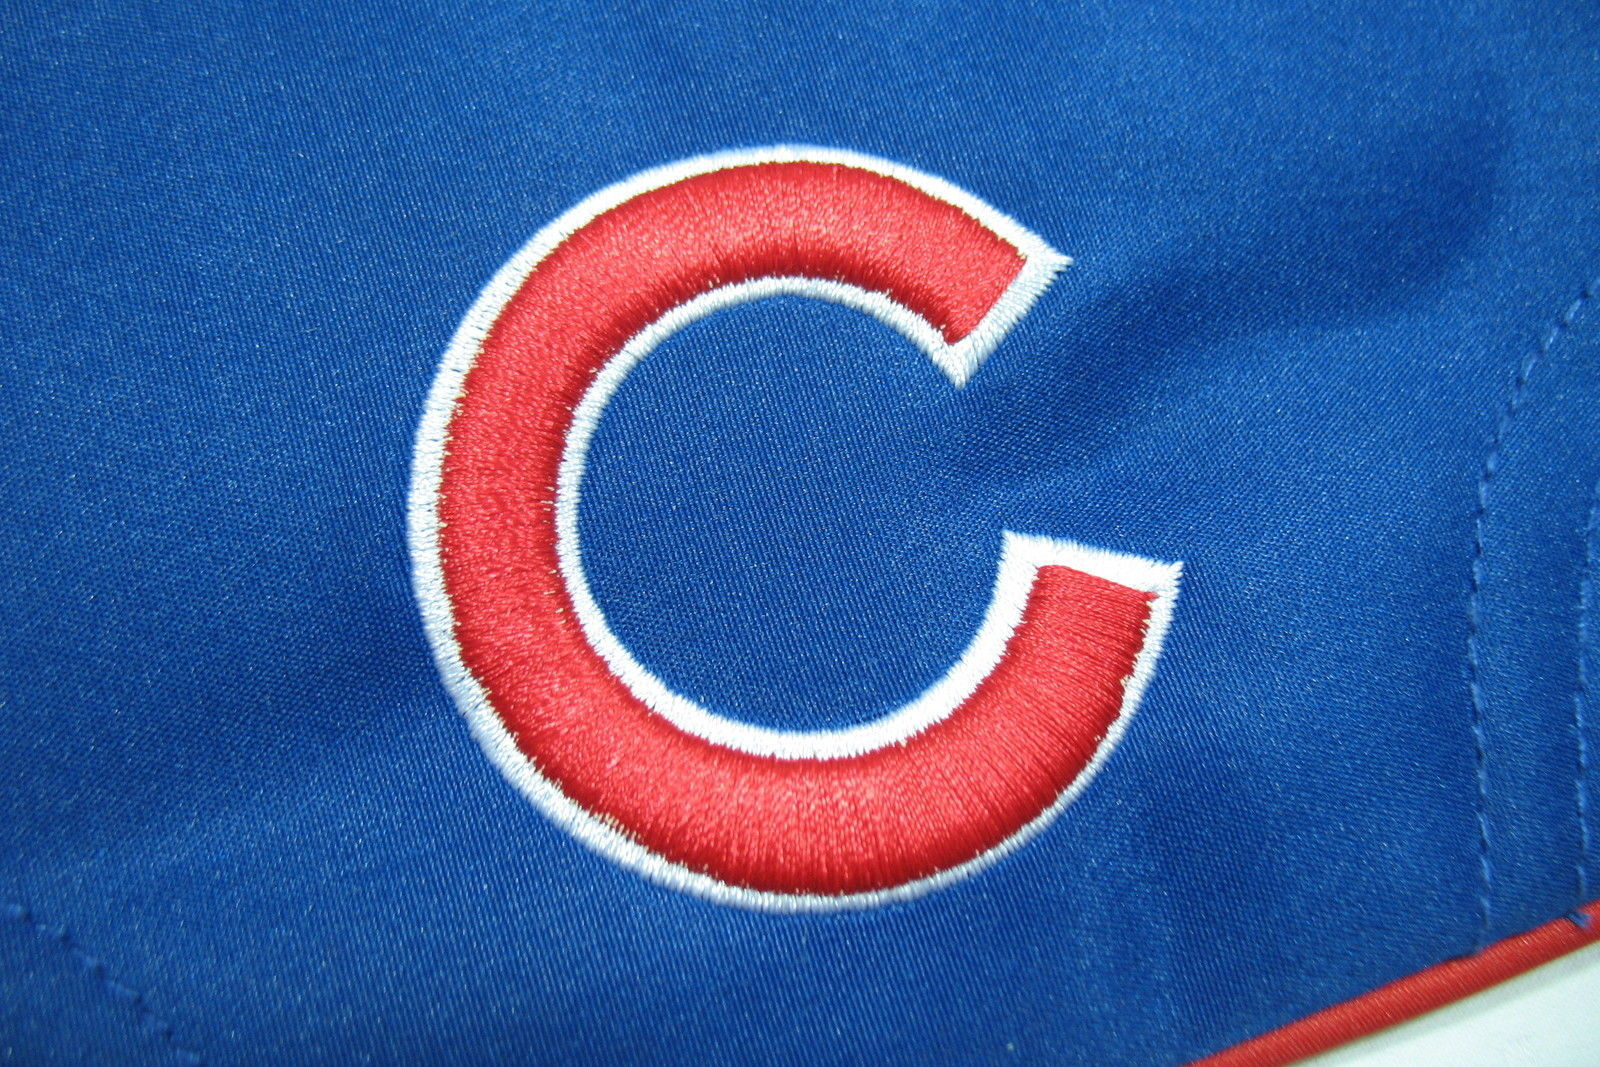 Chicago Cubs Wristlet New Pro-Fan-Ity by Littlearth Red White Blue Logo Zip Top